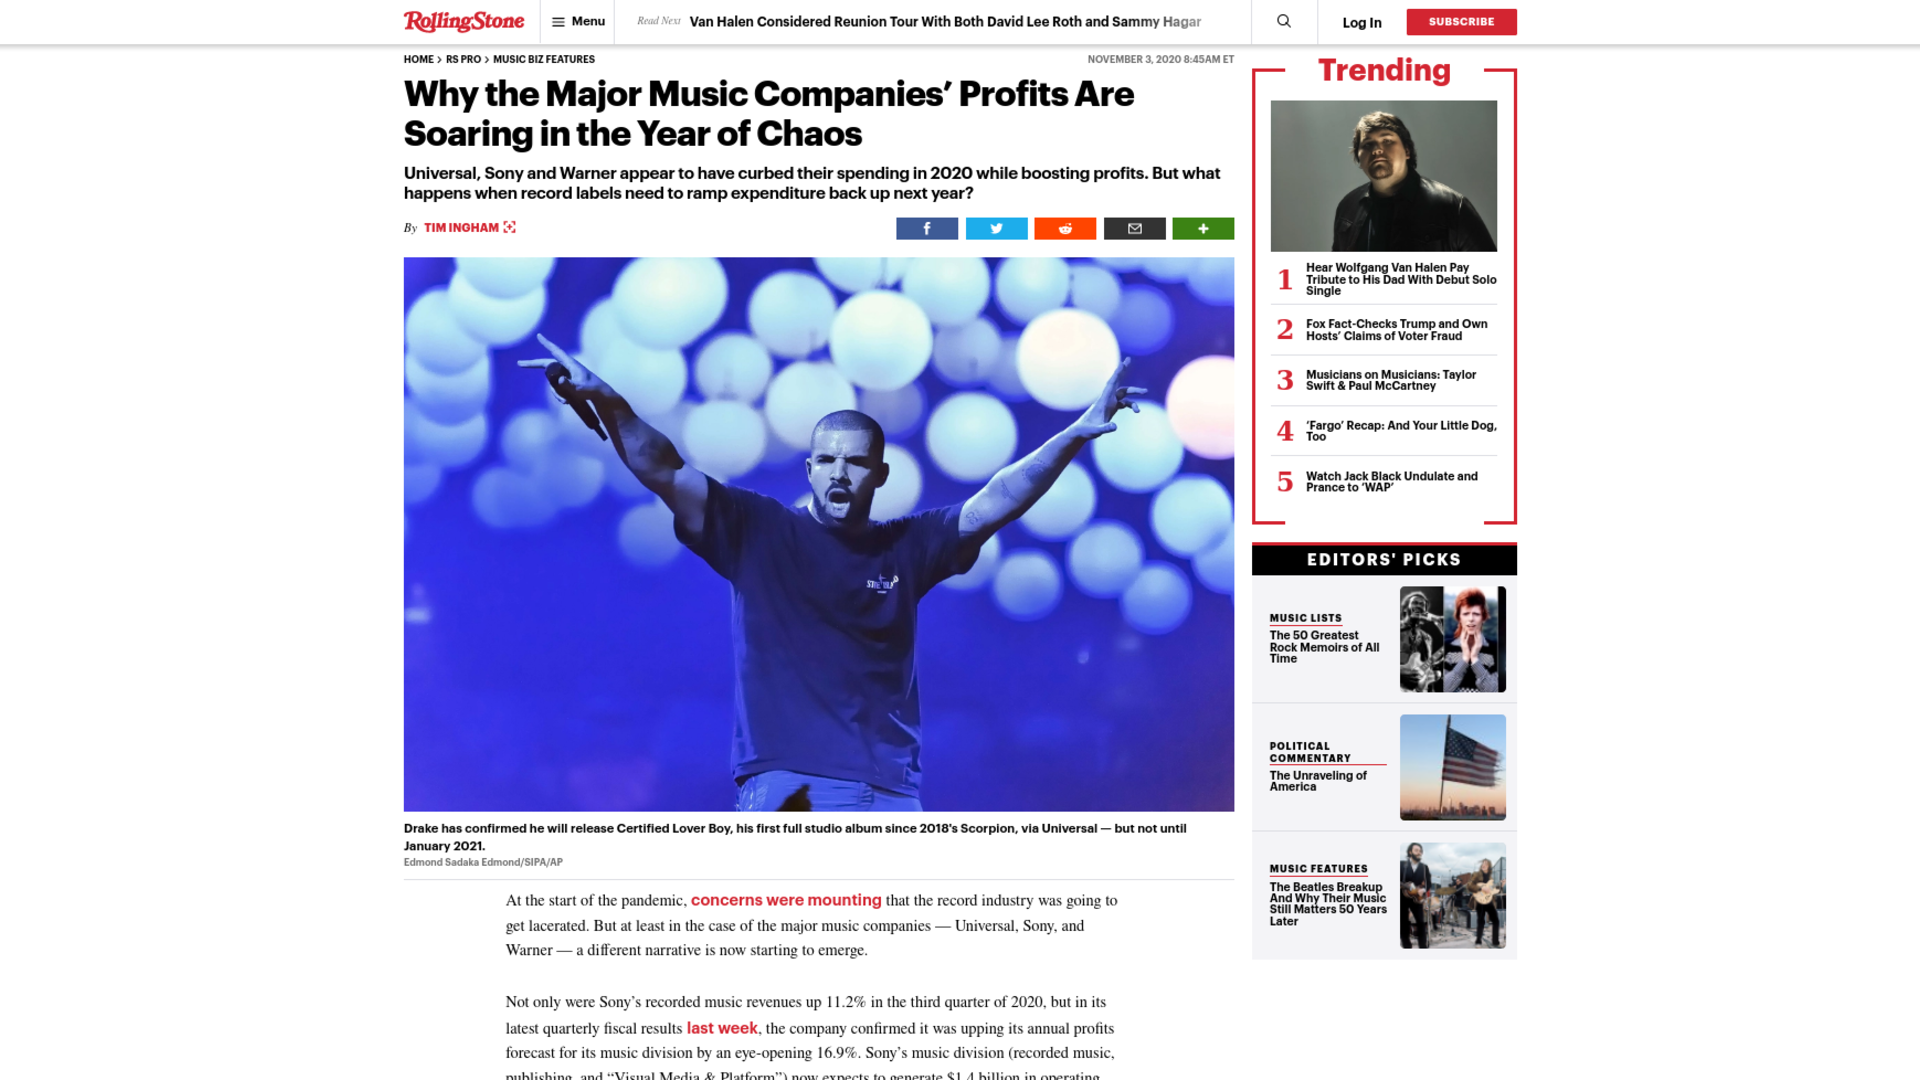 Fairness Rocks News Why the Major Music Companies' Profits Are Soaring in the Year of Chaos